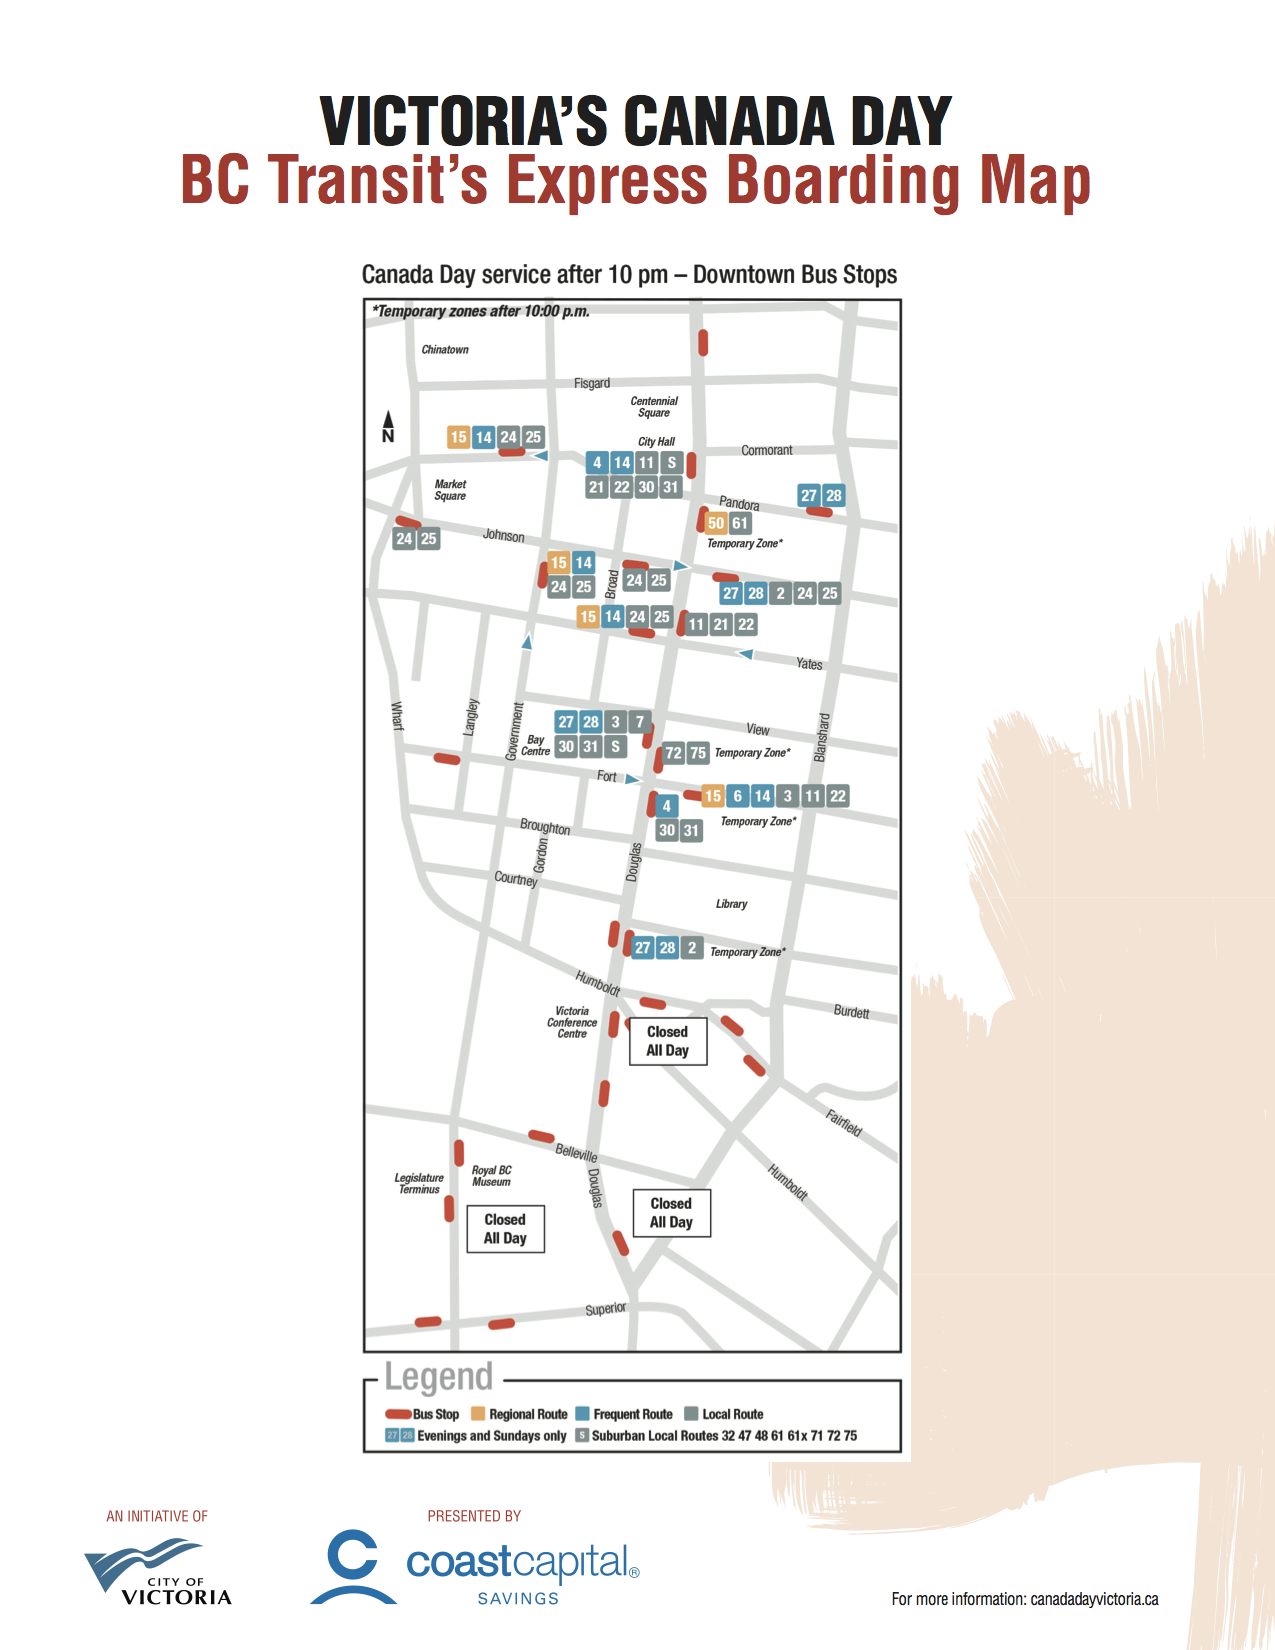 Victoria's Canada Day 2019, Schedule and Map - 2.png